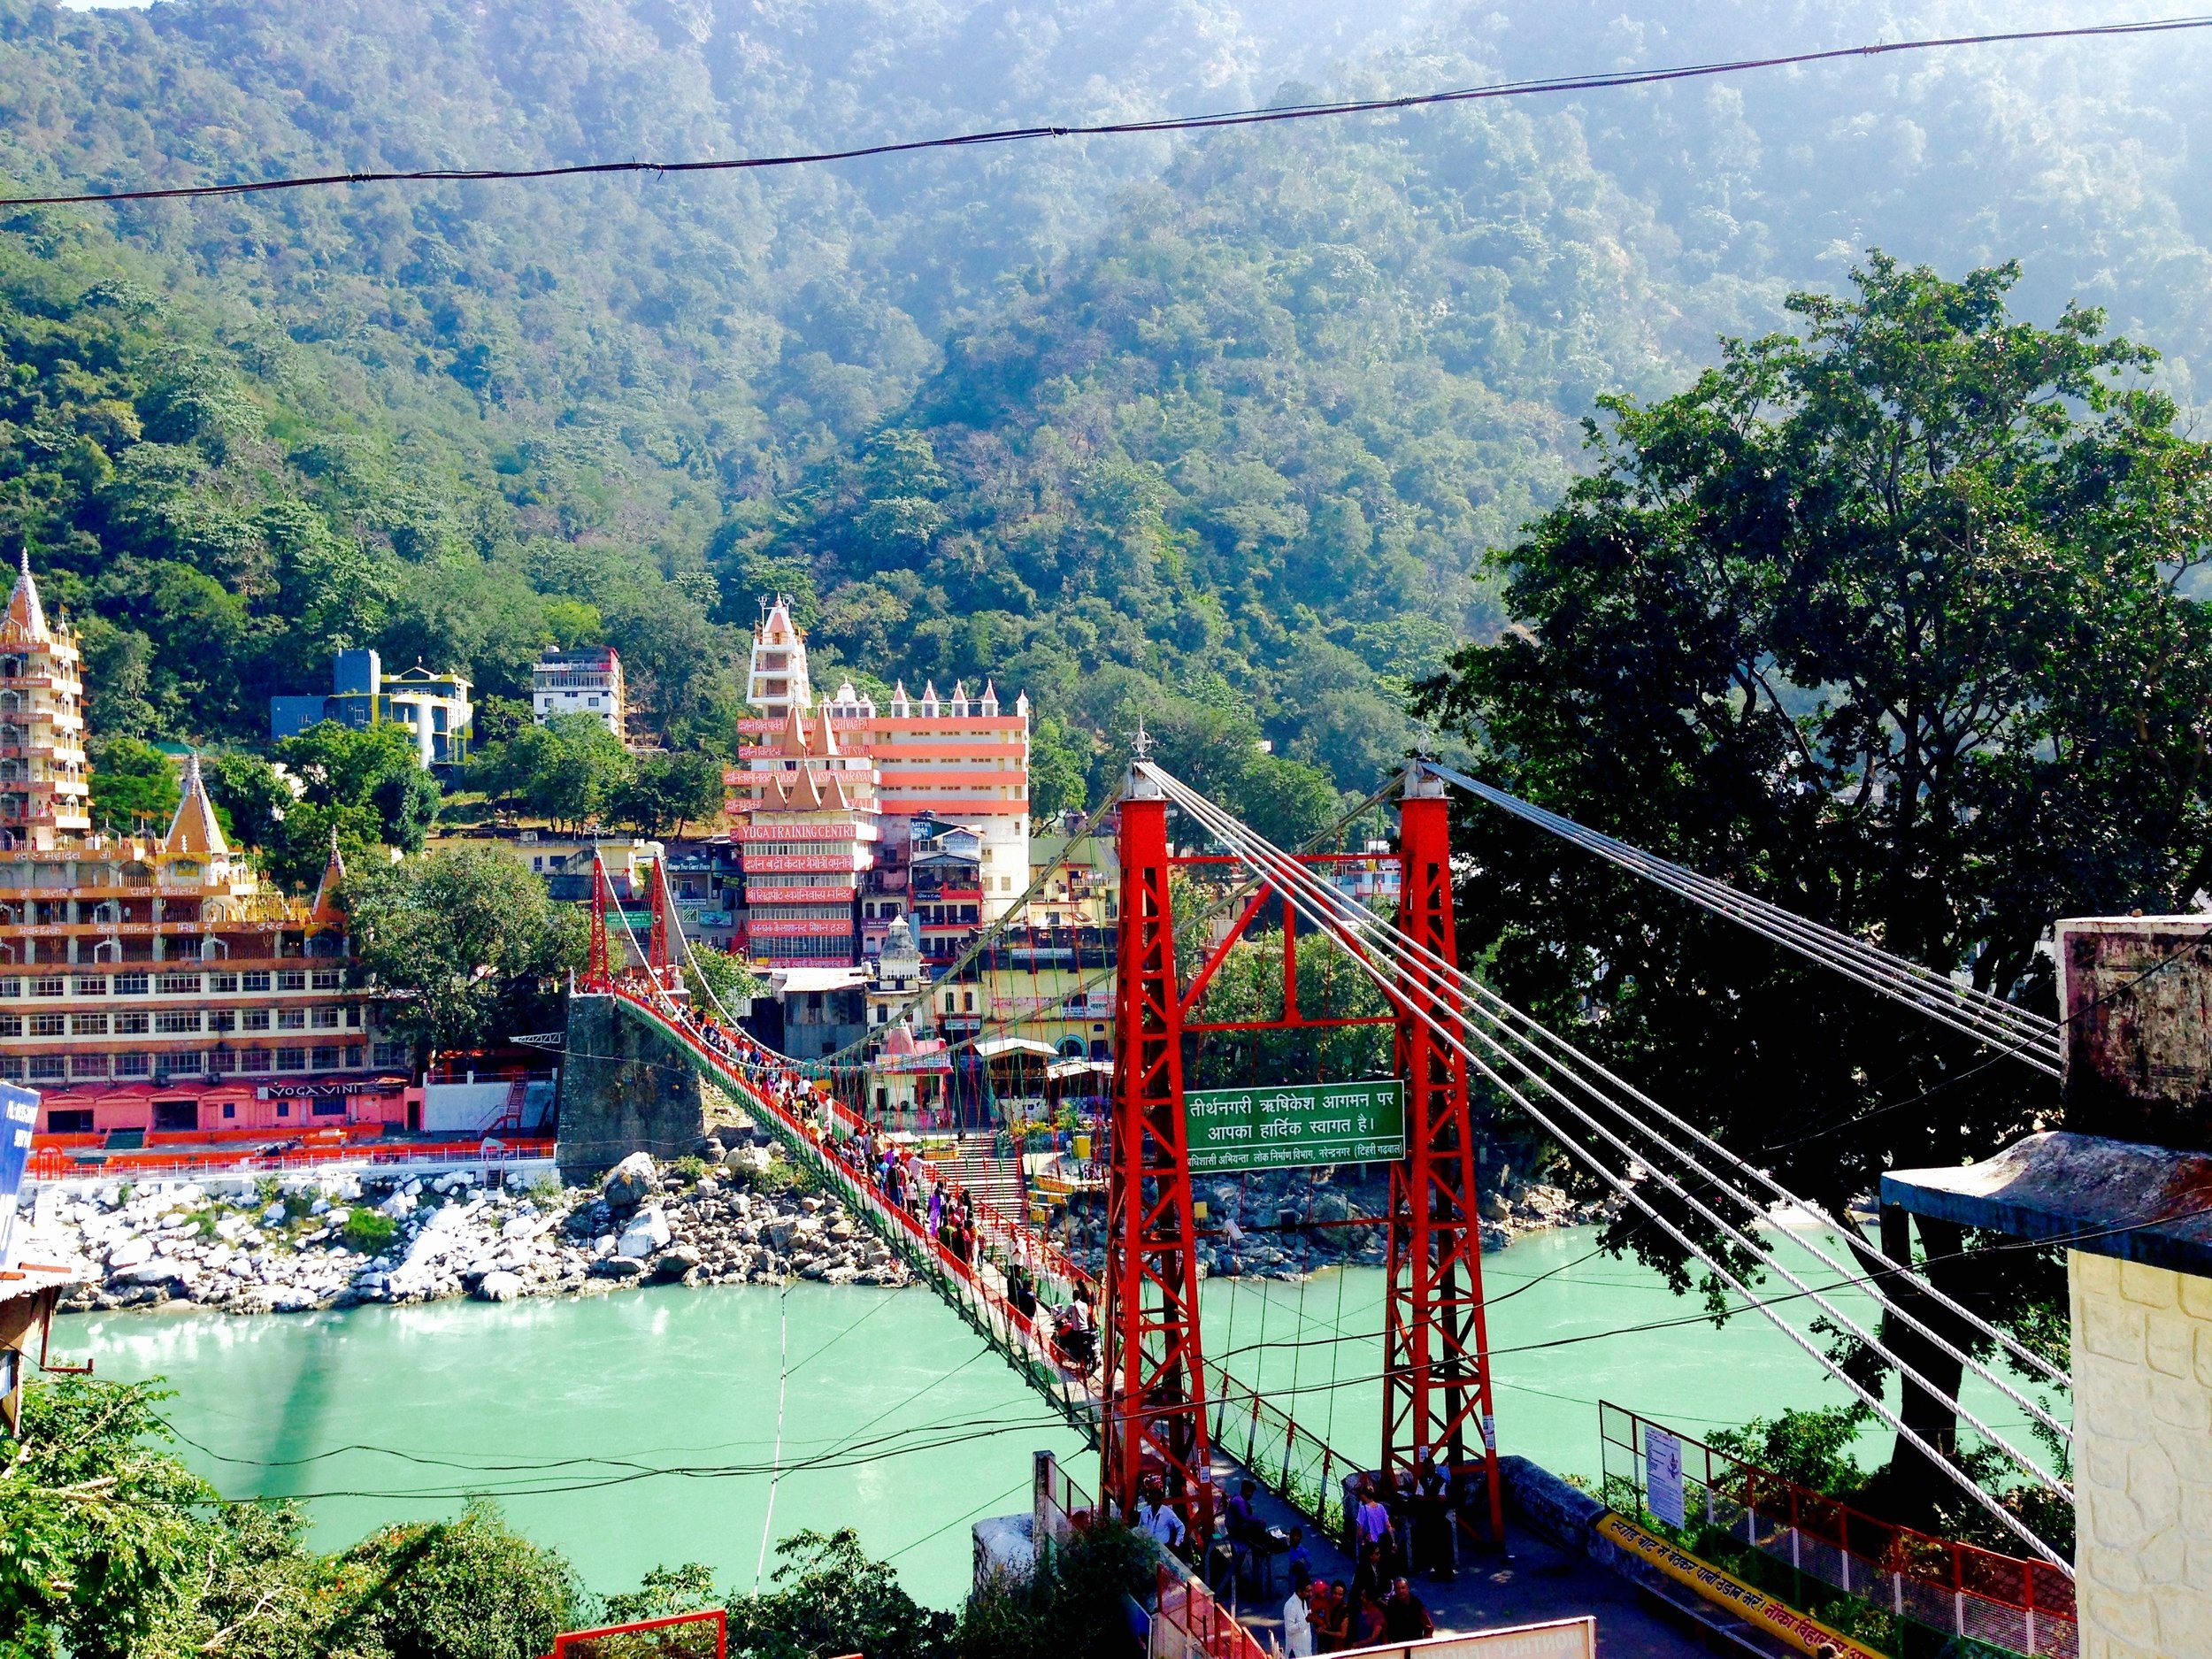 Laxman Jhula Bridge at last! Skinniest little bridge for so much activity -- motorbikes, pedestrians, monkeys, cows, all trying to go about their day. This links over to the other side of the louder, more touristy Rishikesh.